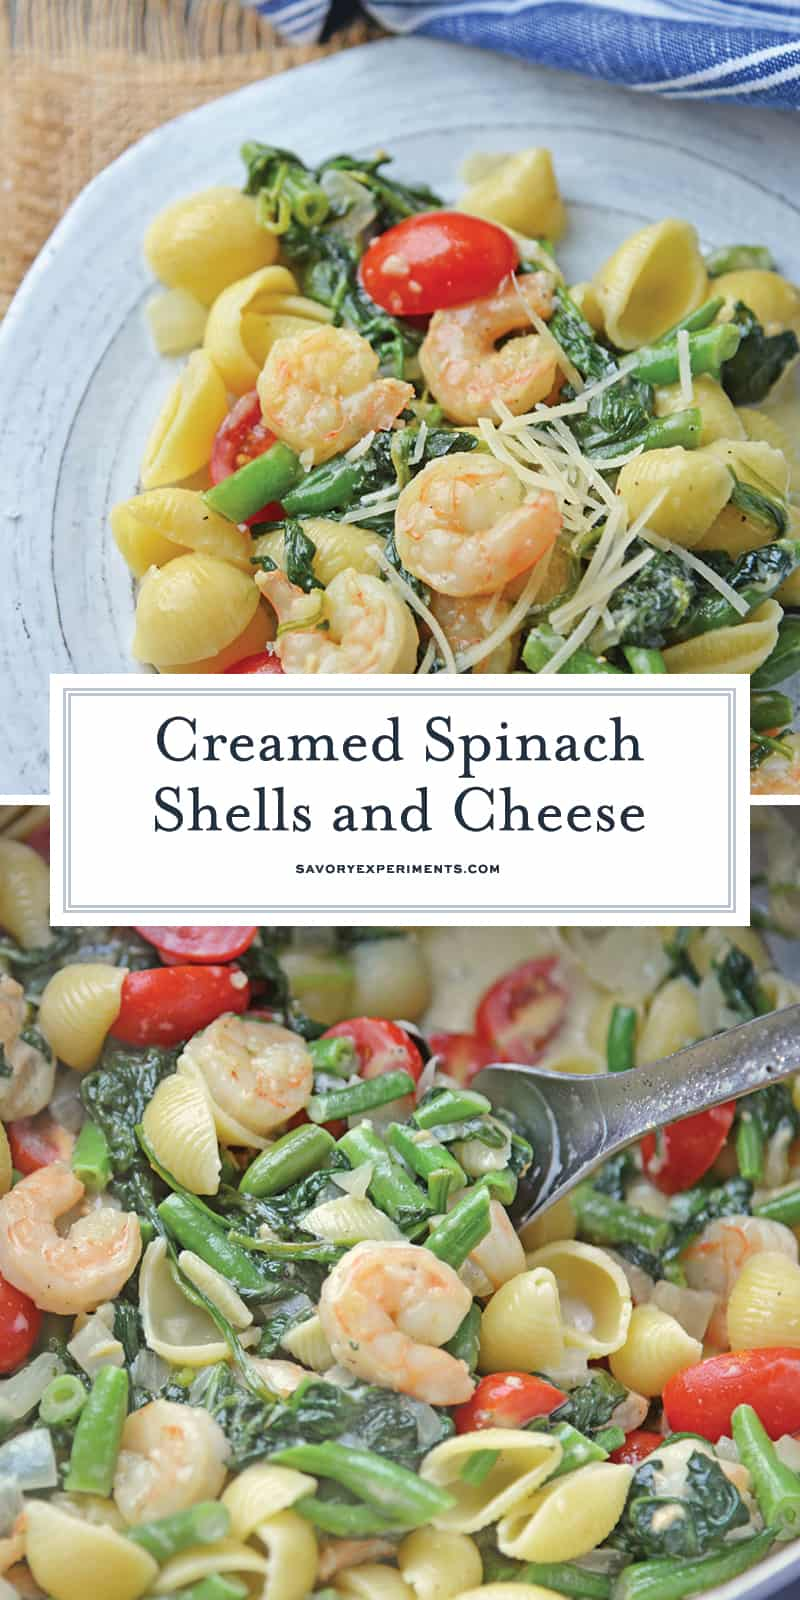 Creamed Spinach Shells and Cheese uses creamed spinach as a sauce for an amazingly quick pasta dish, that you won't be able to get enough of! #spinachcreamsauce #creamedspinachrecipes www.savoryexperiments.com